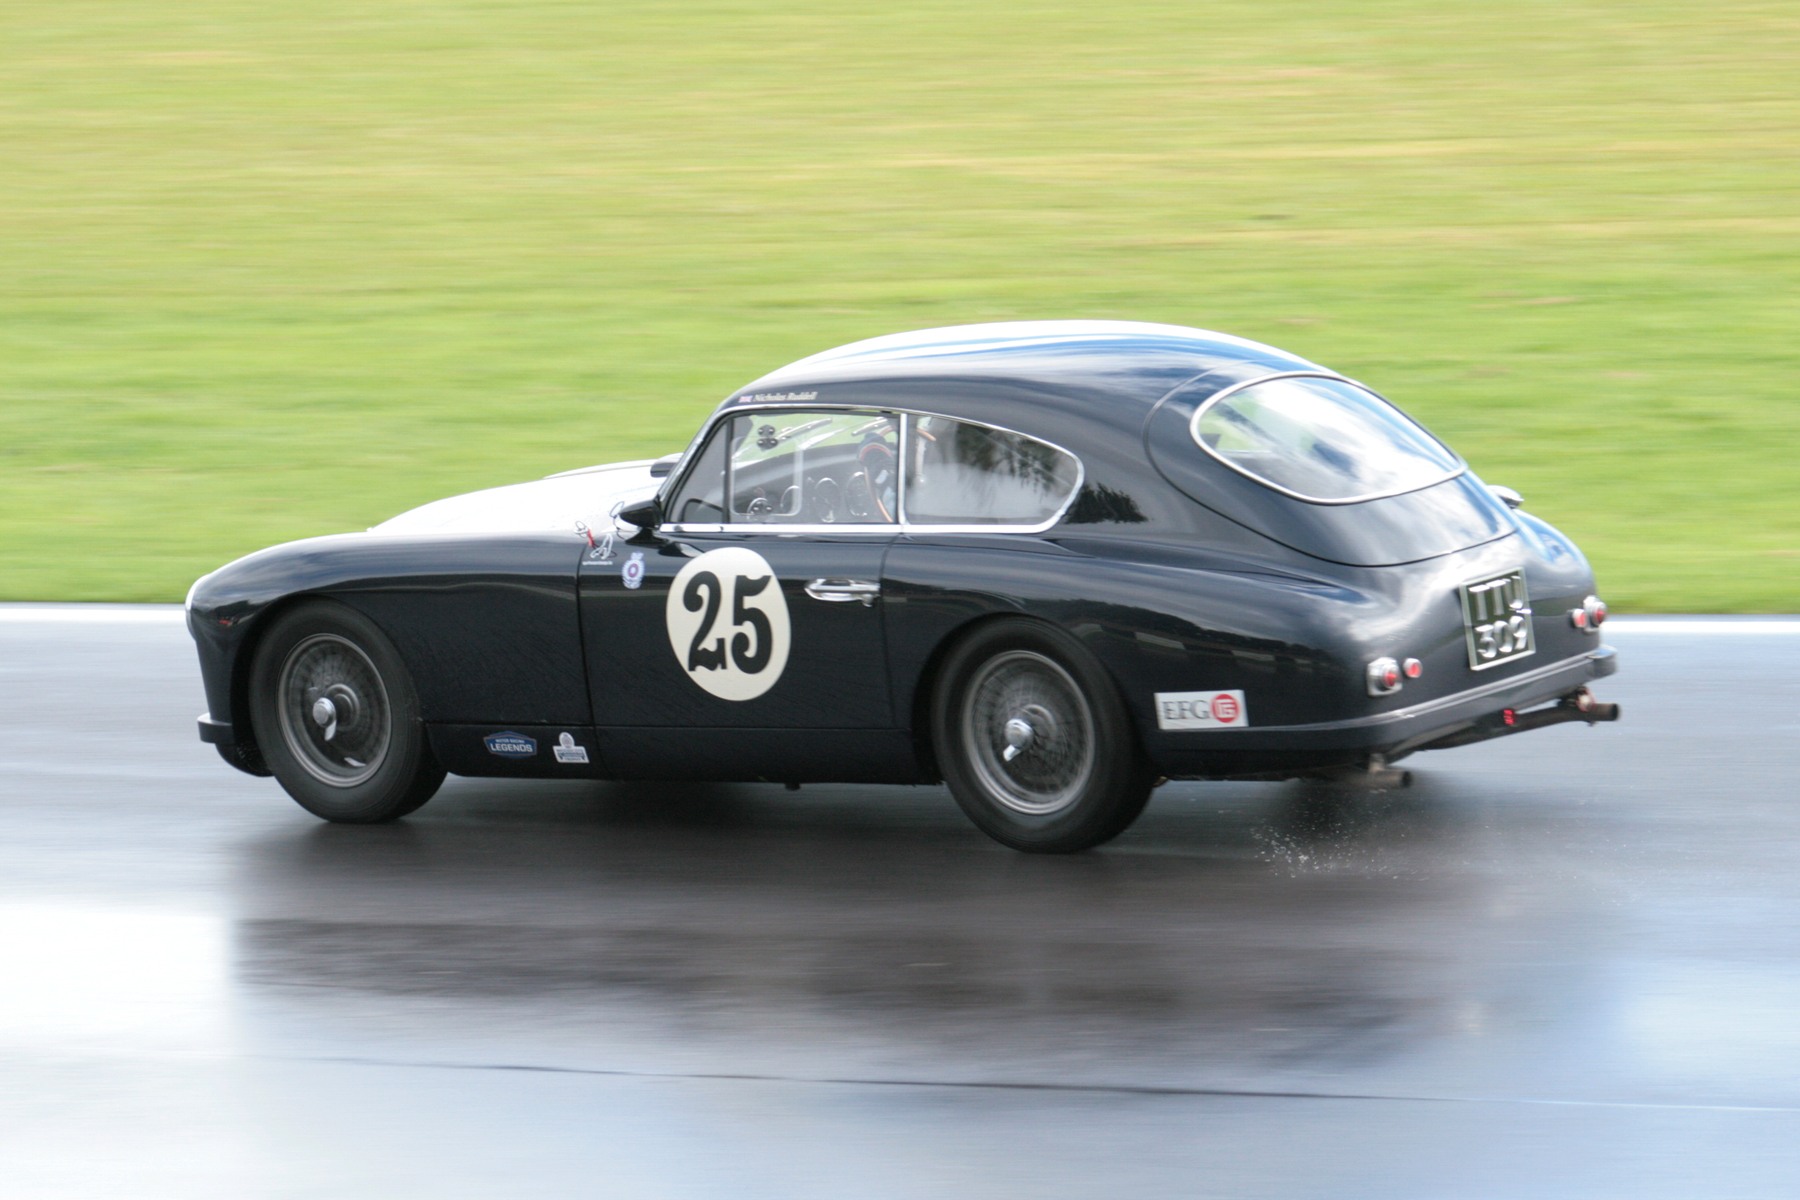 Nick Ruddell on his way to 13th overall in his Aston Martin DB2/4. He was to race again later in the day, in the Jon Gross memorial Trophy.  Photo - John Turner